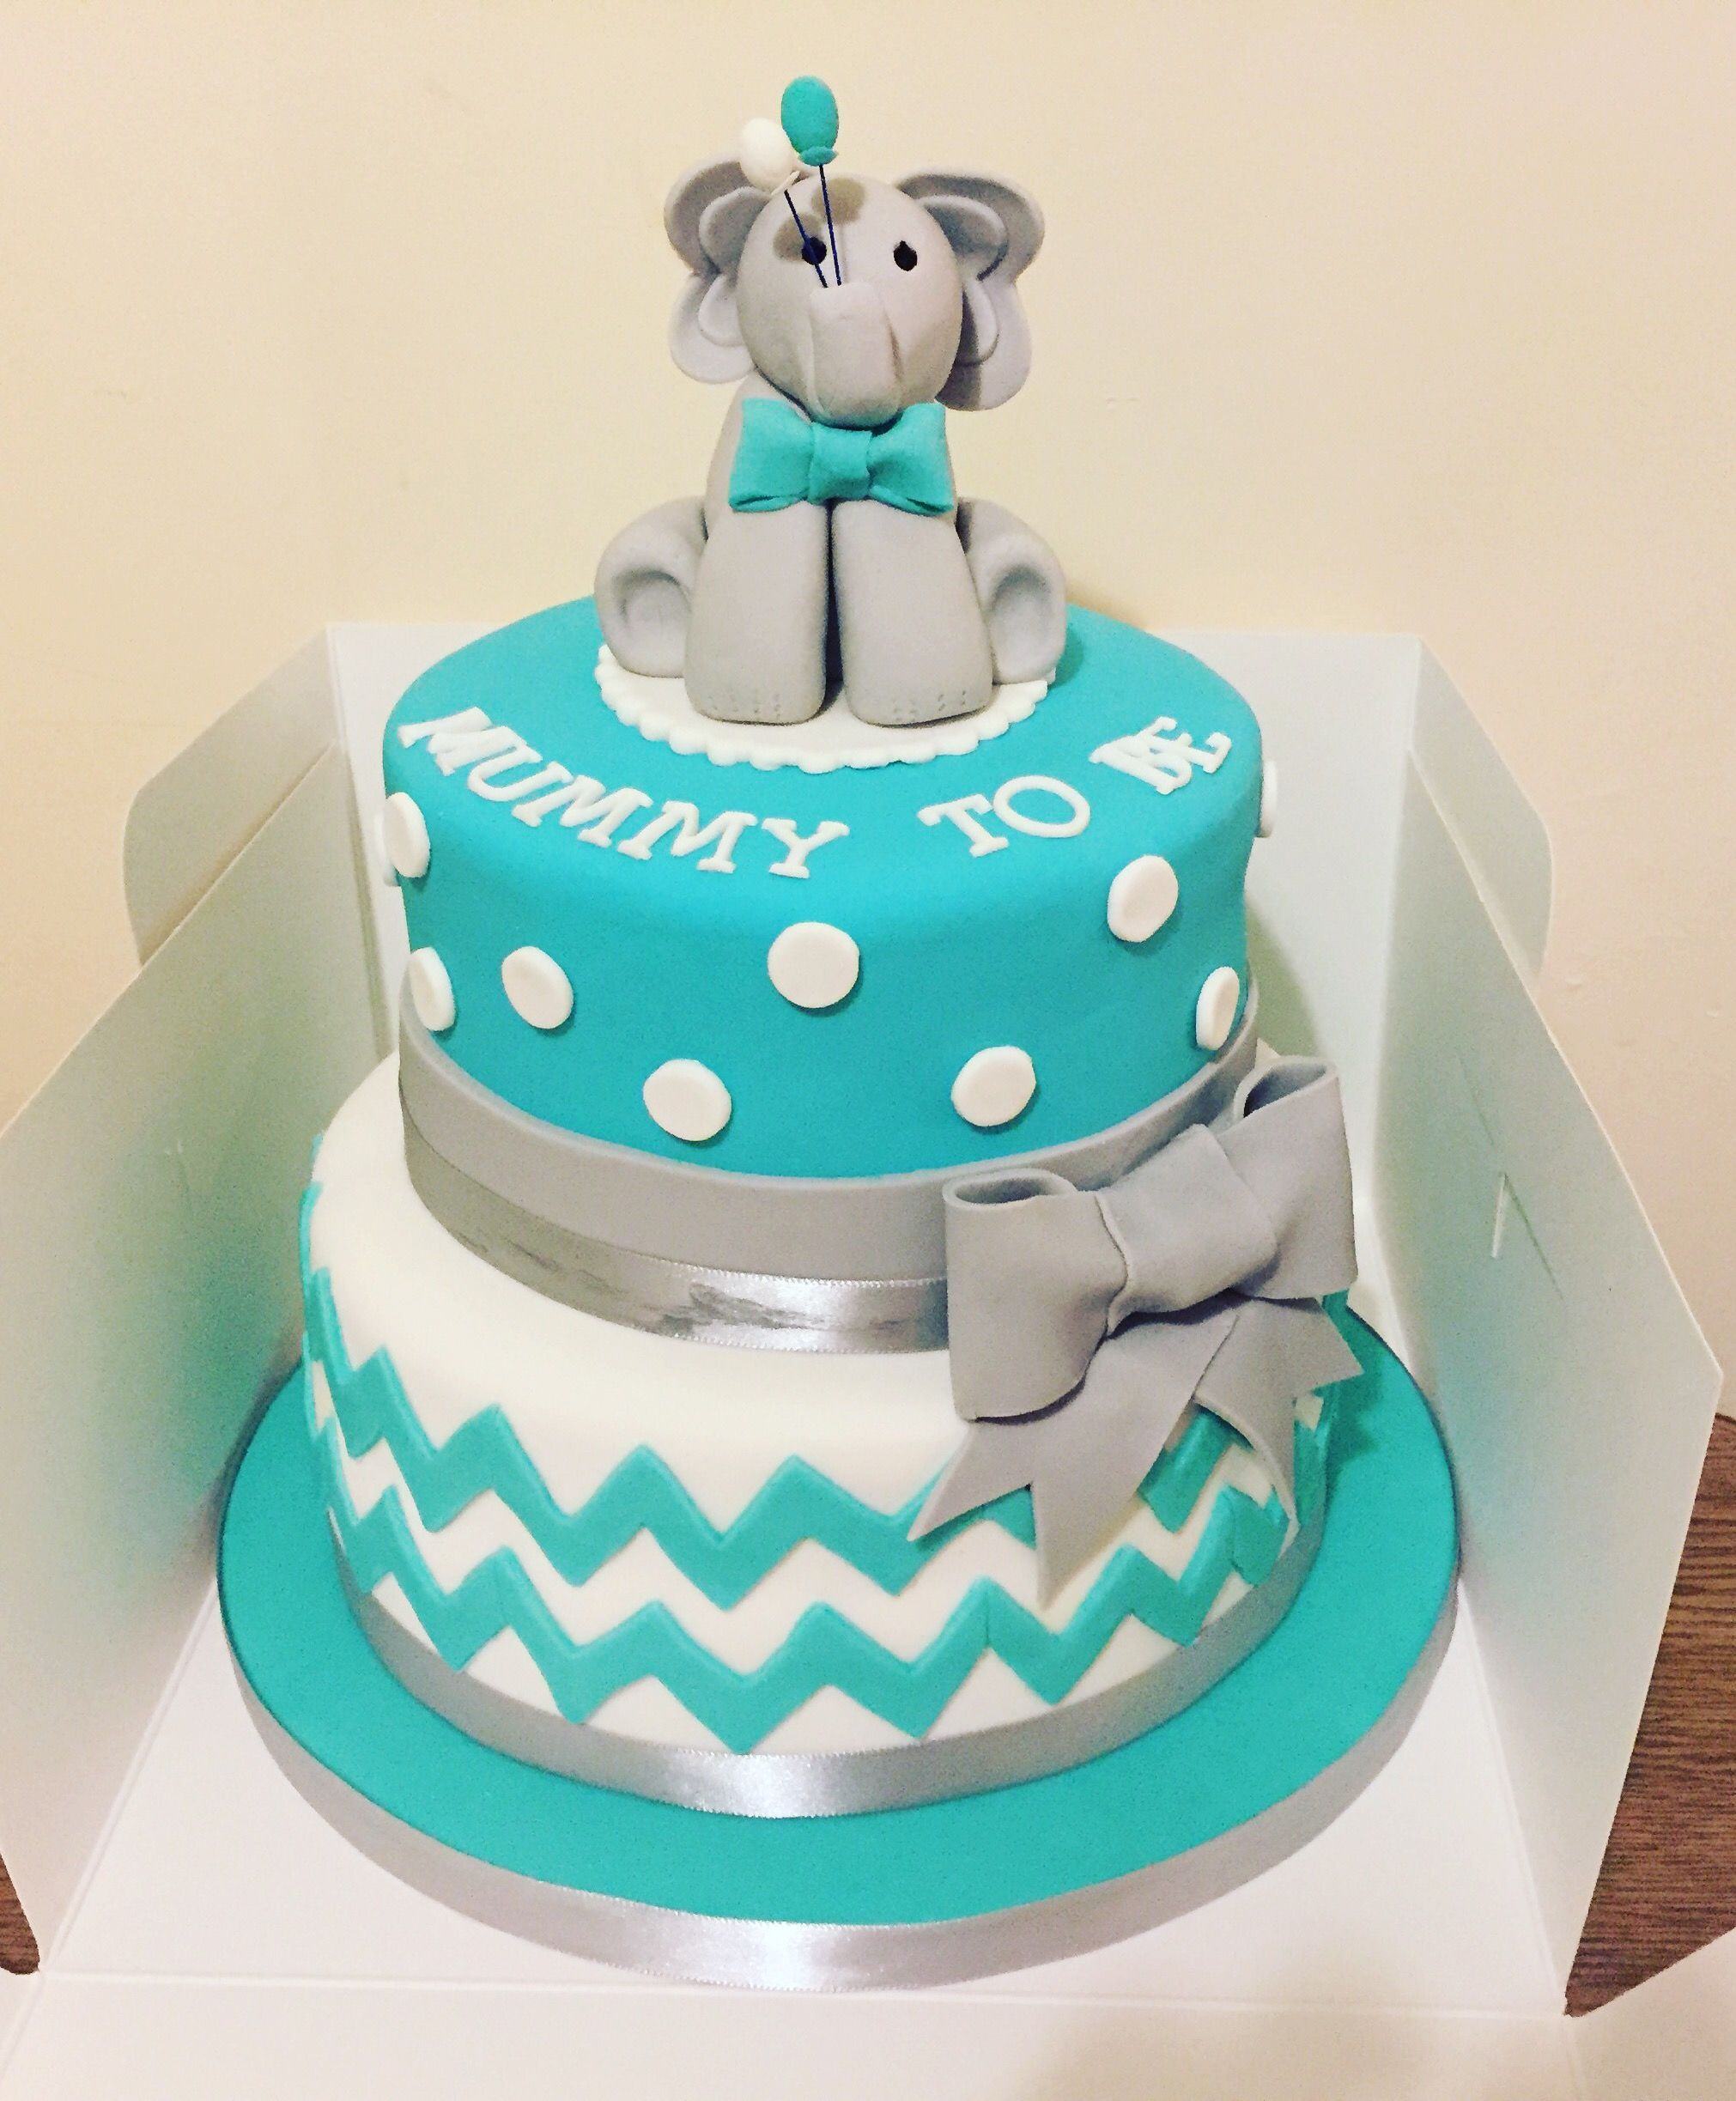 Two Tier Baby Shower Cake For A Mummy To Be With An Elephant